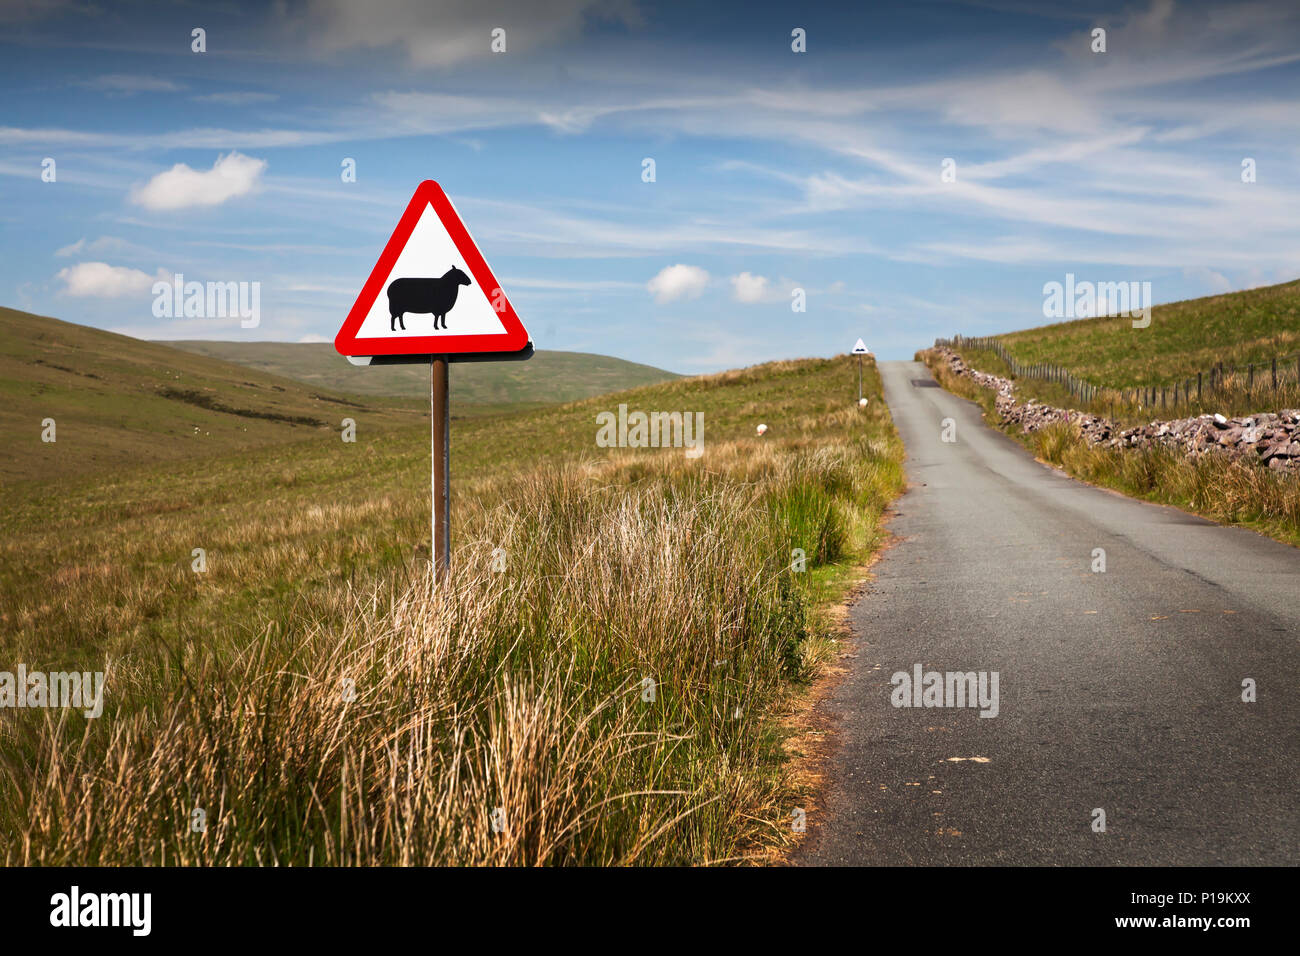 Mountain road sheep warning sign in the Brecon Beacons National Park; Wales; UK - Stock Image